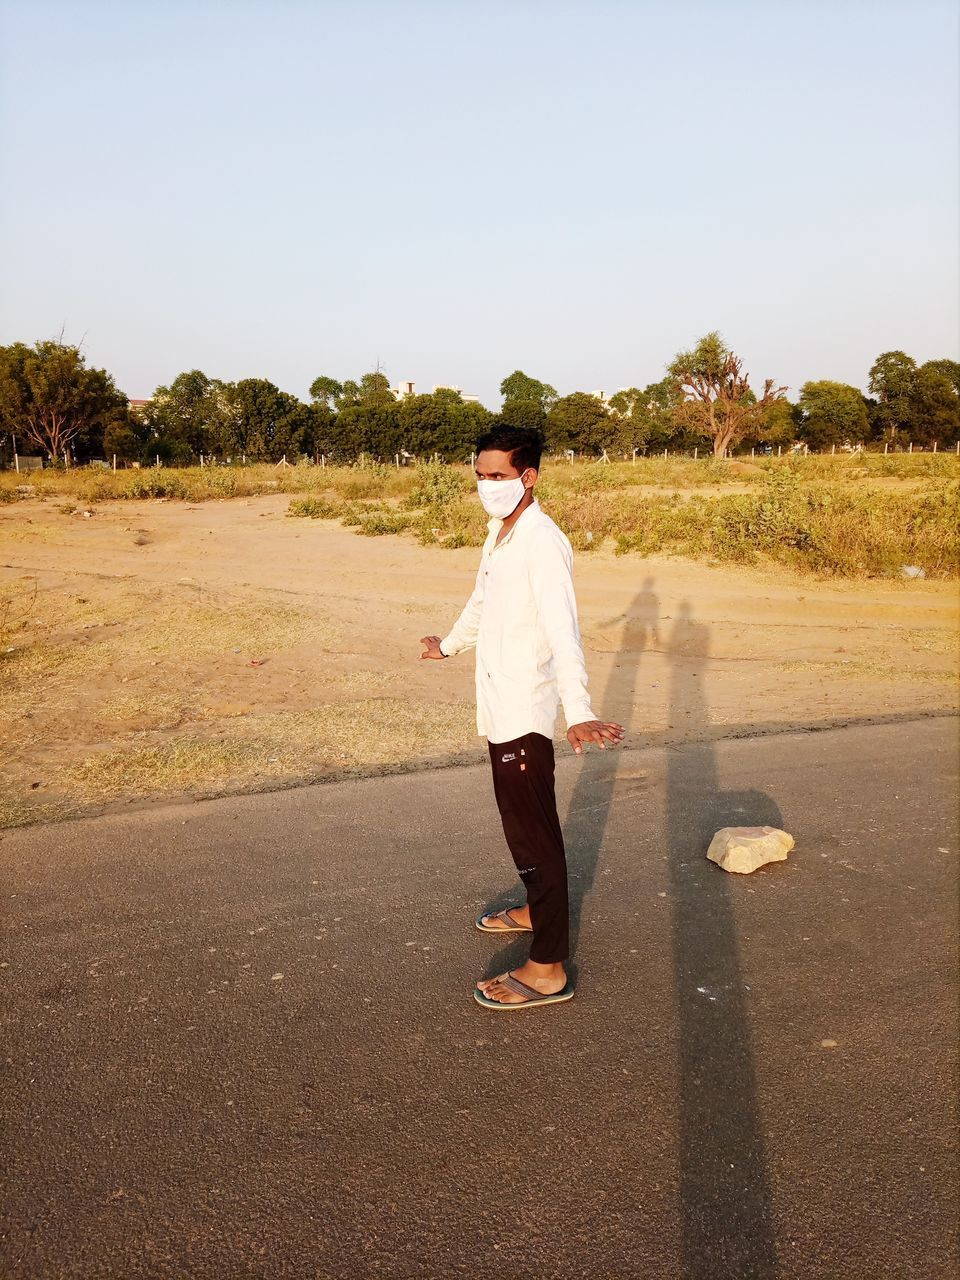 MAN STANDING ON ROAD AGAINST CLEAR SKY